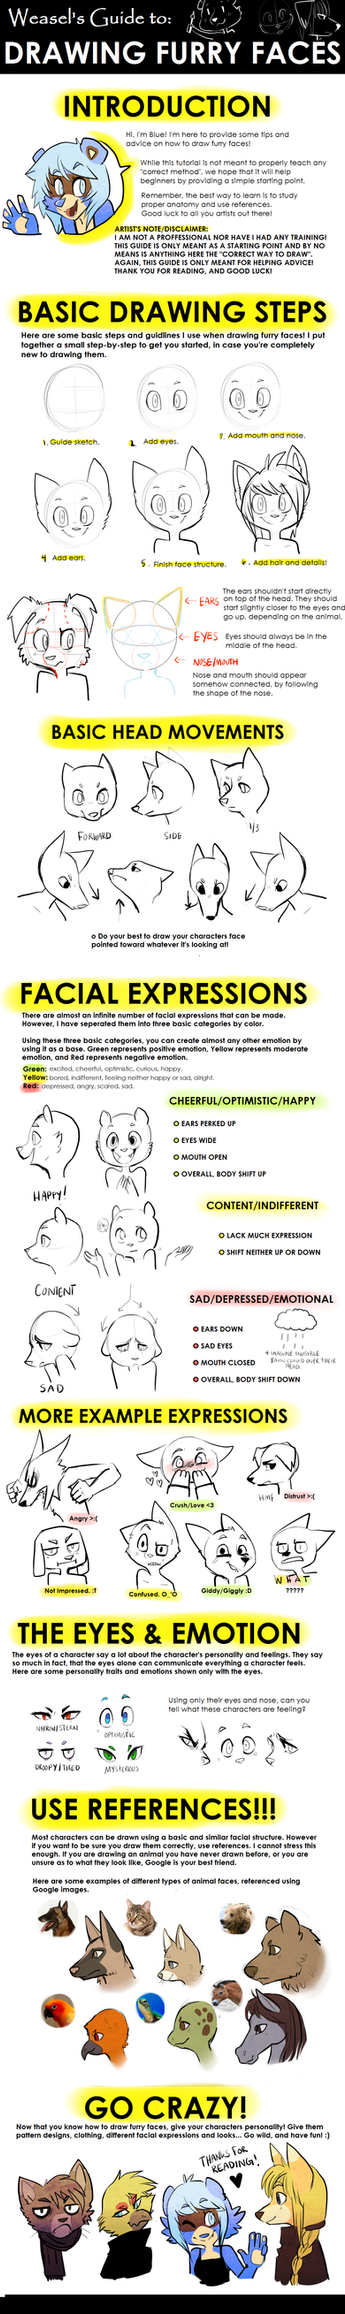 Guide to Drawing Furry Faces by thatWeasel